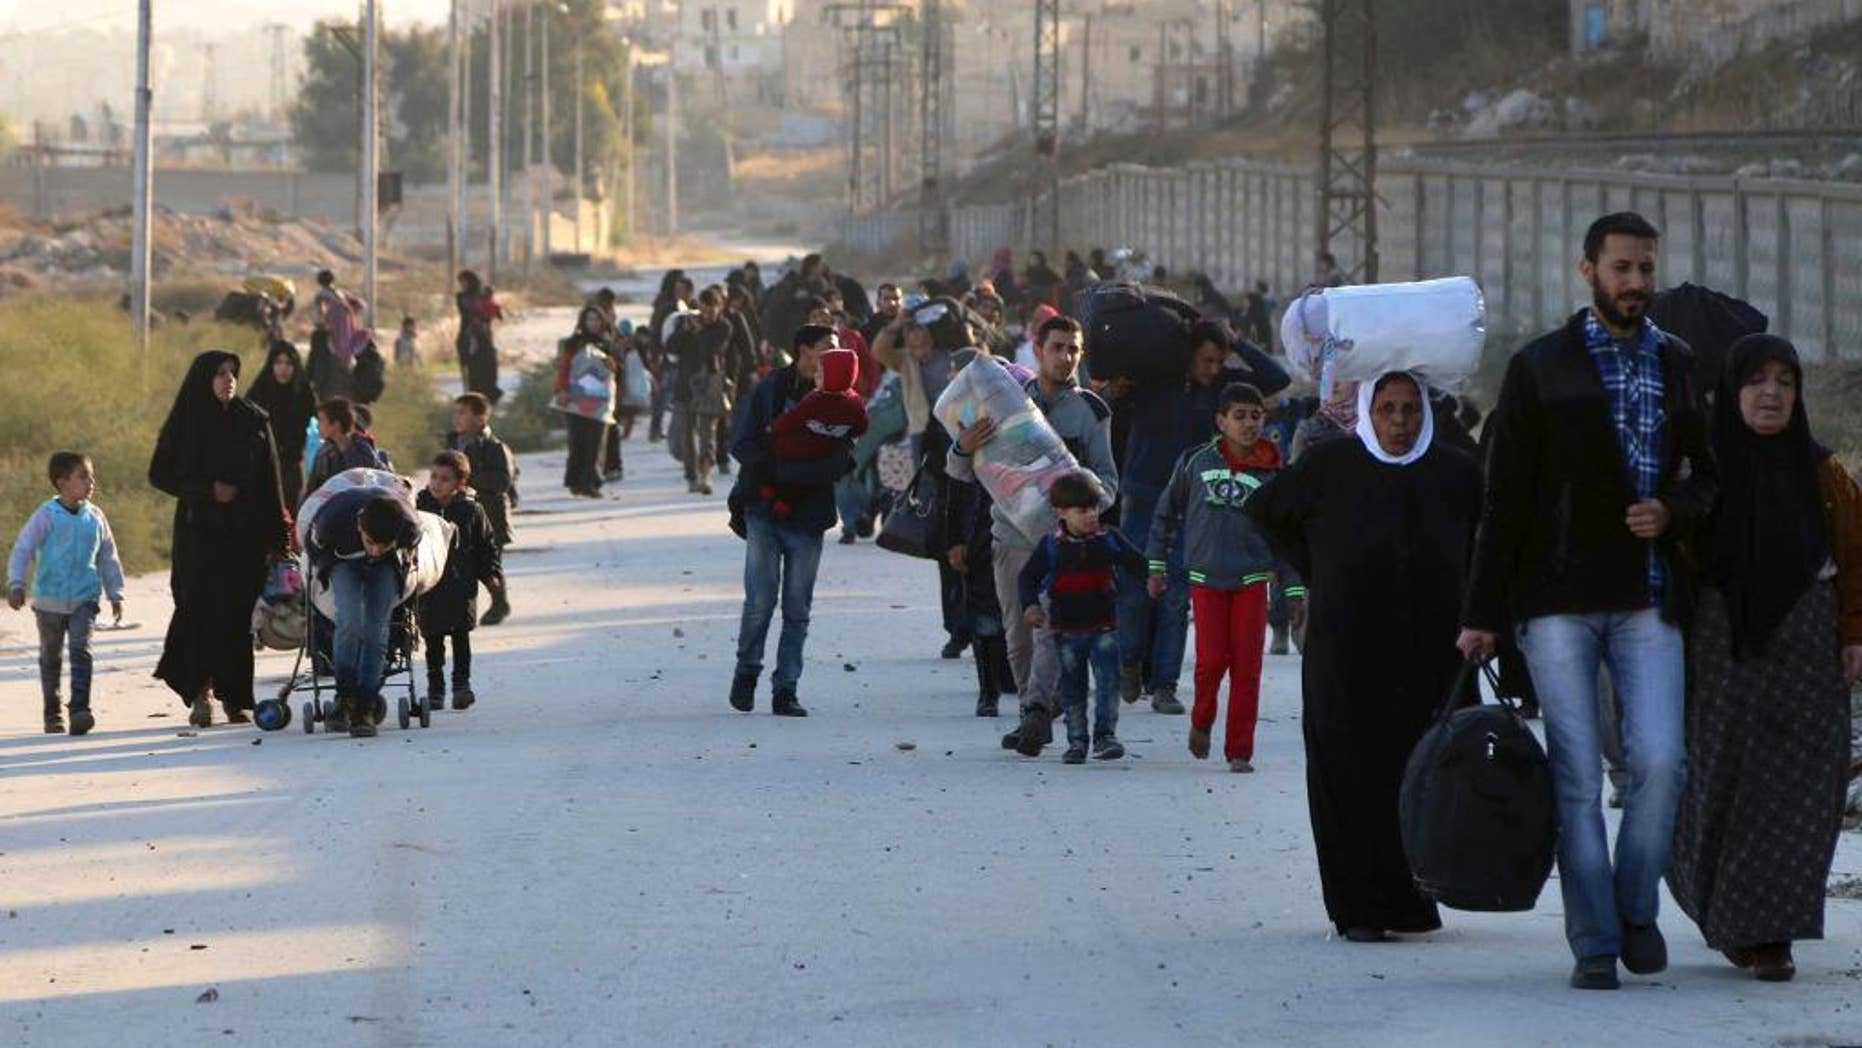 FILE - In this Sunday, Nov. 27, 2016 file photo provided by the Rumaf, a Syrian Kurdish activist group, which has been authenticated based on its contents and other AP reporting, shows people fleeing rebel-held eastern neighborhoods of Aleppo into the Sheikh Maqsoud area that is controlled by Kurdish fighters, Syria. The U.N. humanitarian aid agency said Friday an estimated 31,500 have been displaced from the government advances into the rebel-held enclave since this weekend, in one of the most dramatic shifts in the conflict now in its sixth year. (The Rumaf via AP, File)